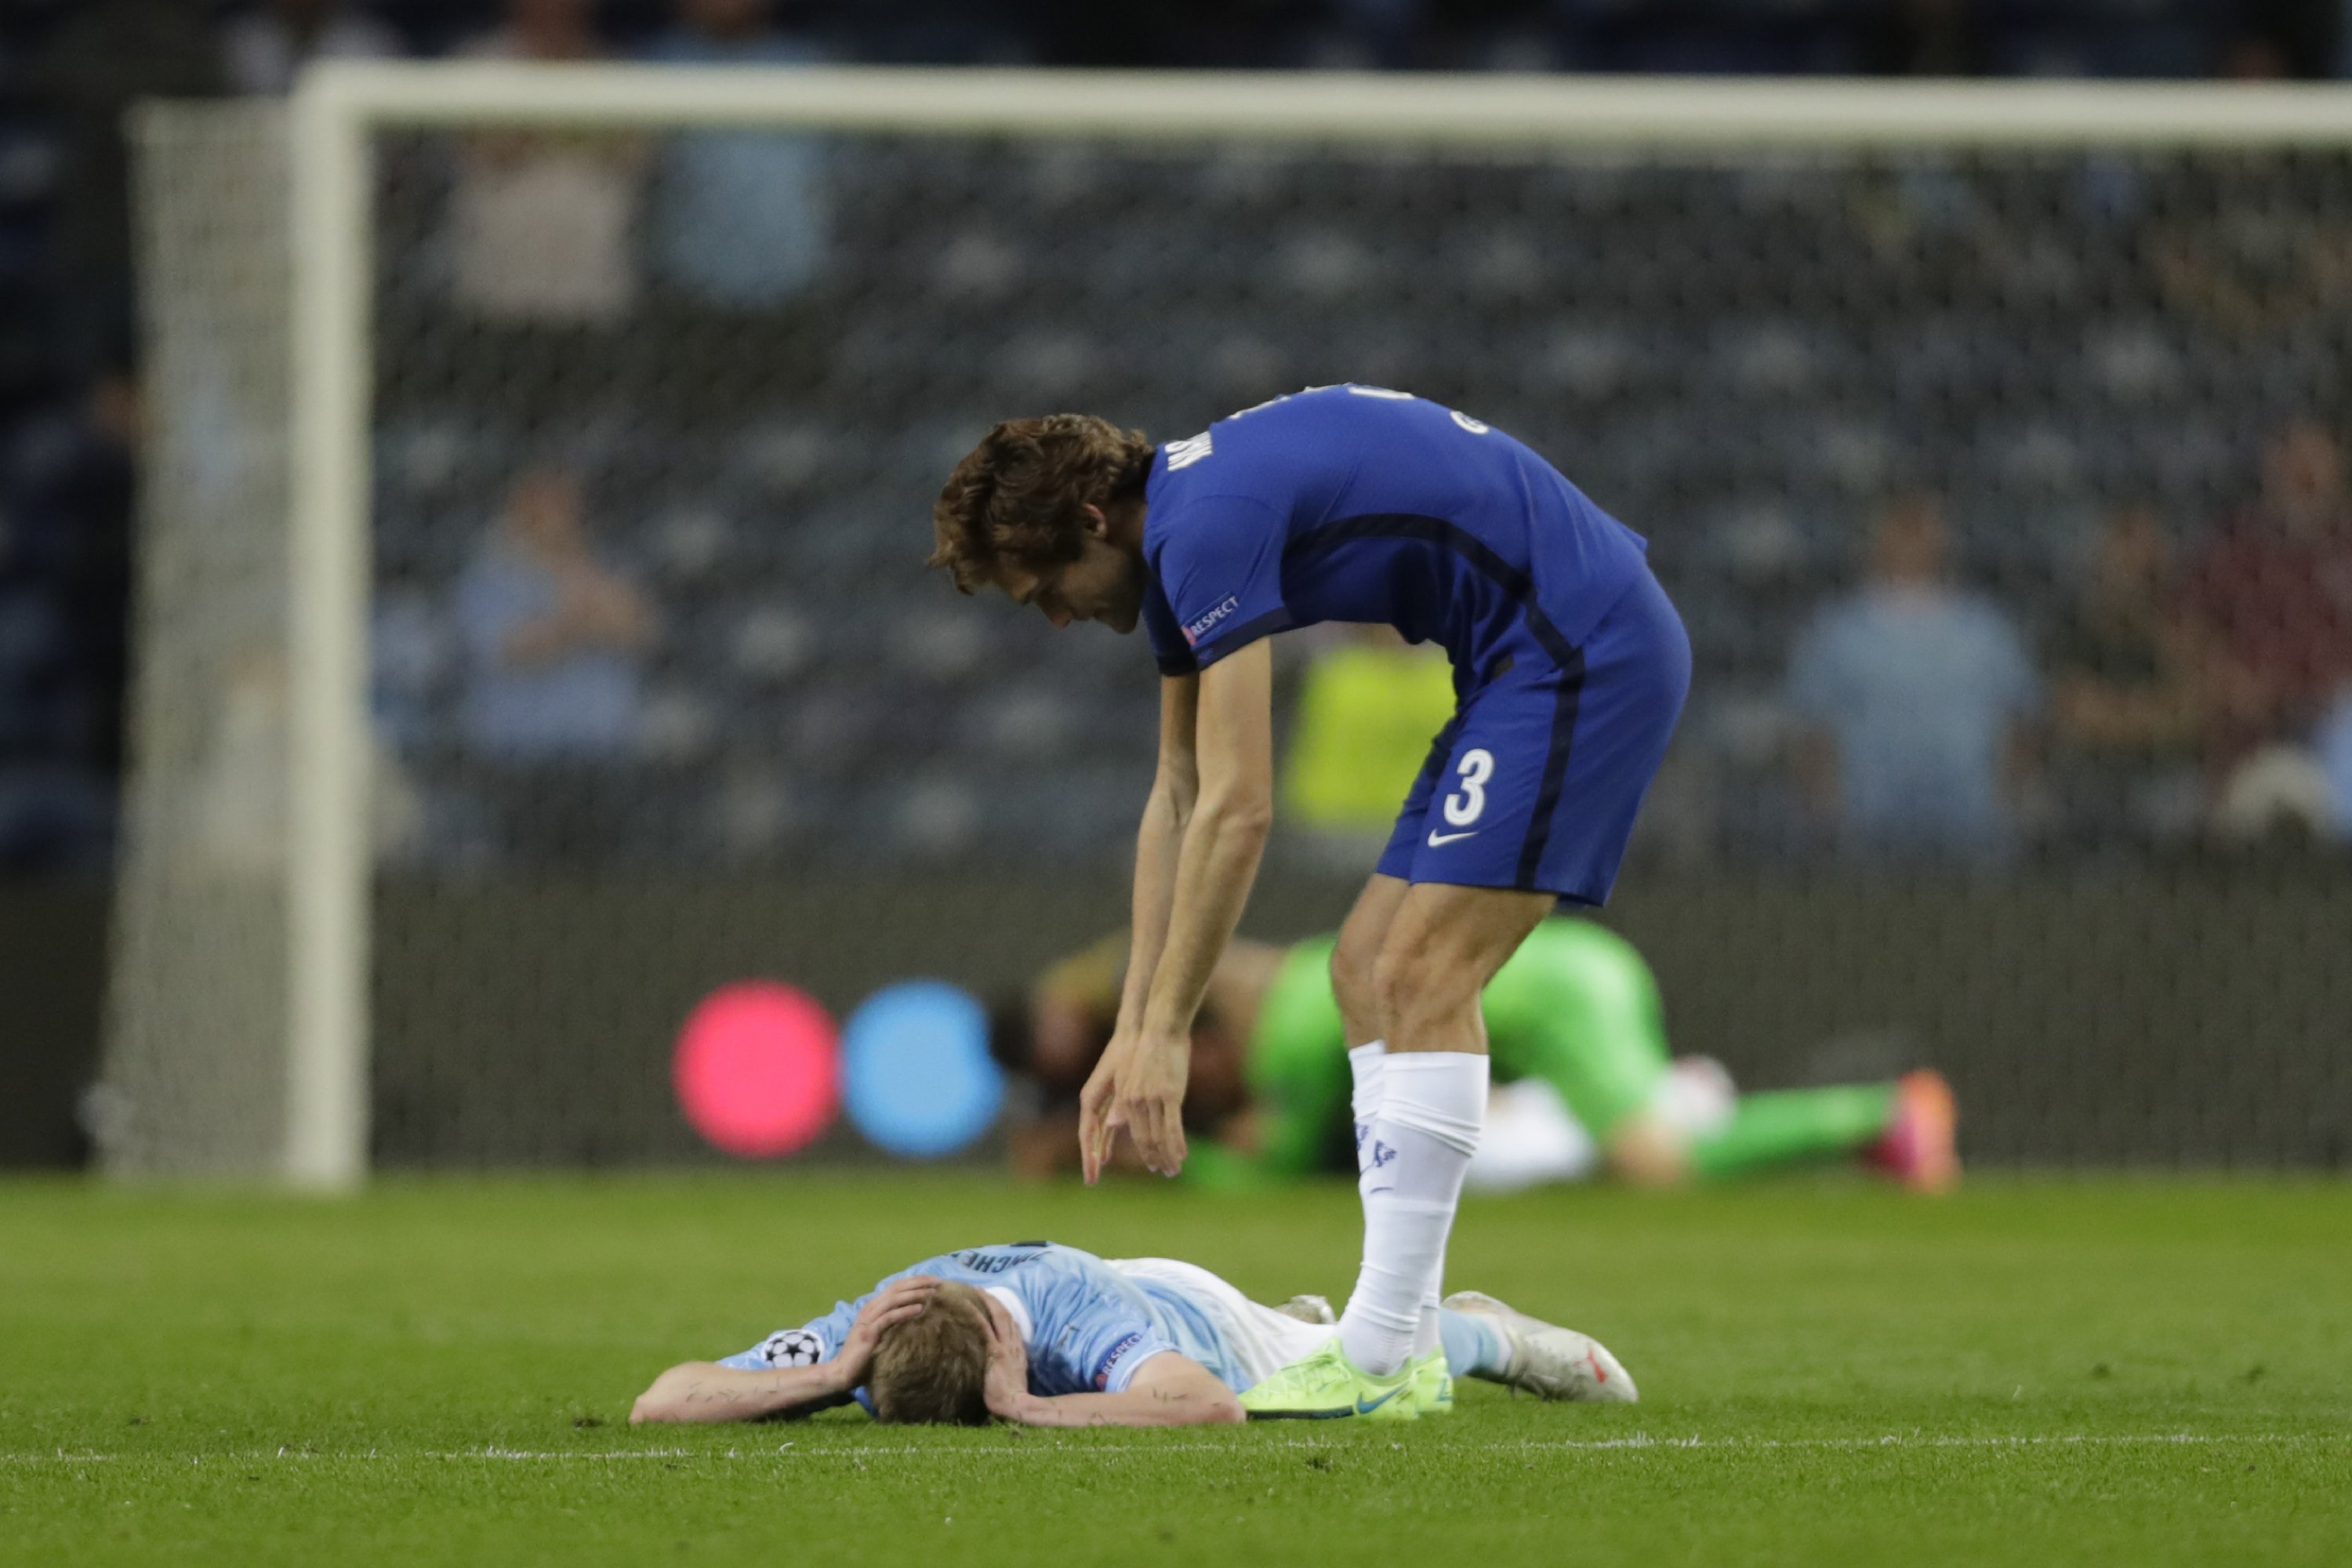 Manchester City's Oleksandr Zinchenko (L) is comforted by Chelsea's Marcos Alonso after Chelsea won the Champions League title at Dragao Stadium in Porto, Portugal, May 29, 2021. (AP Photo)